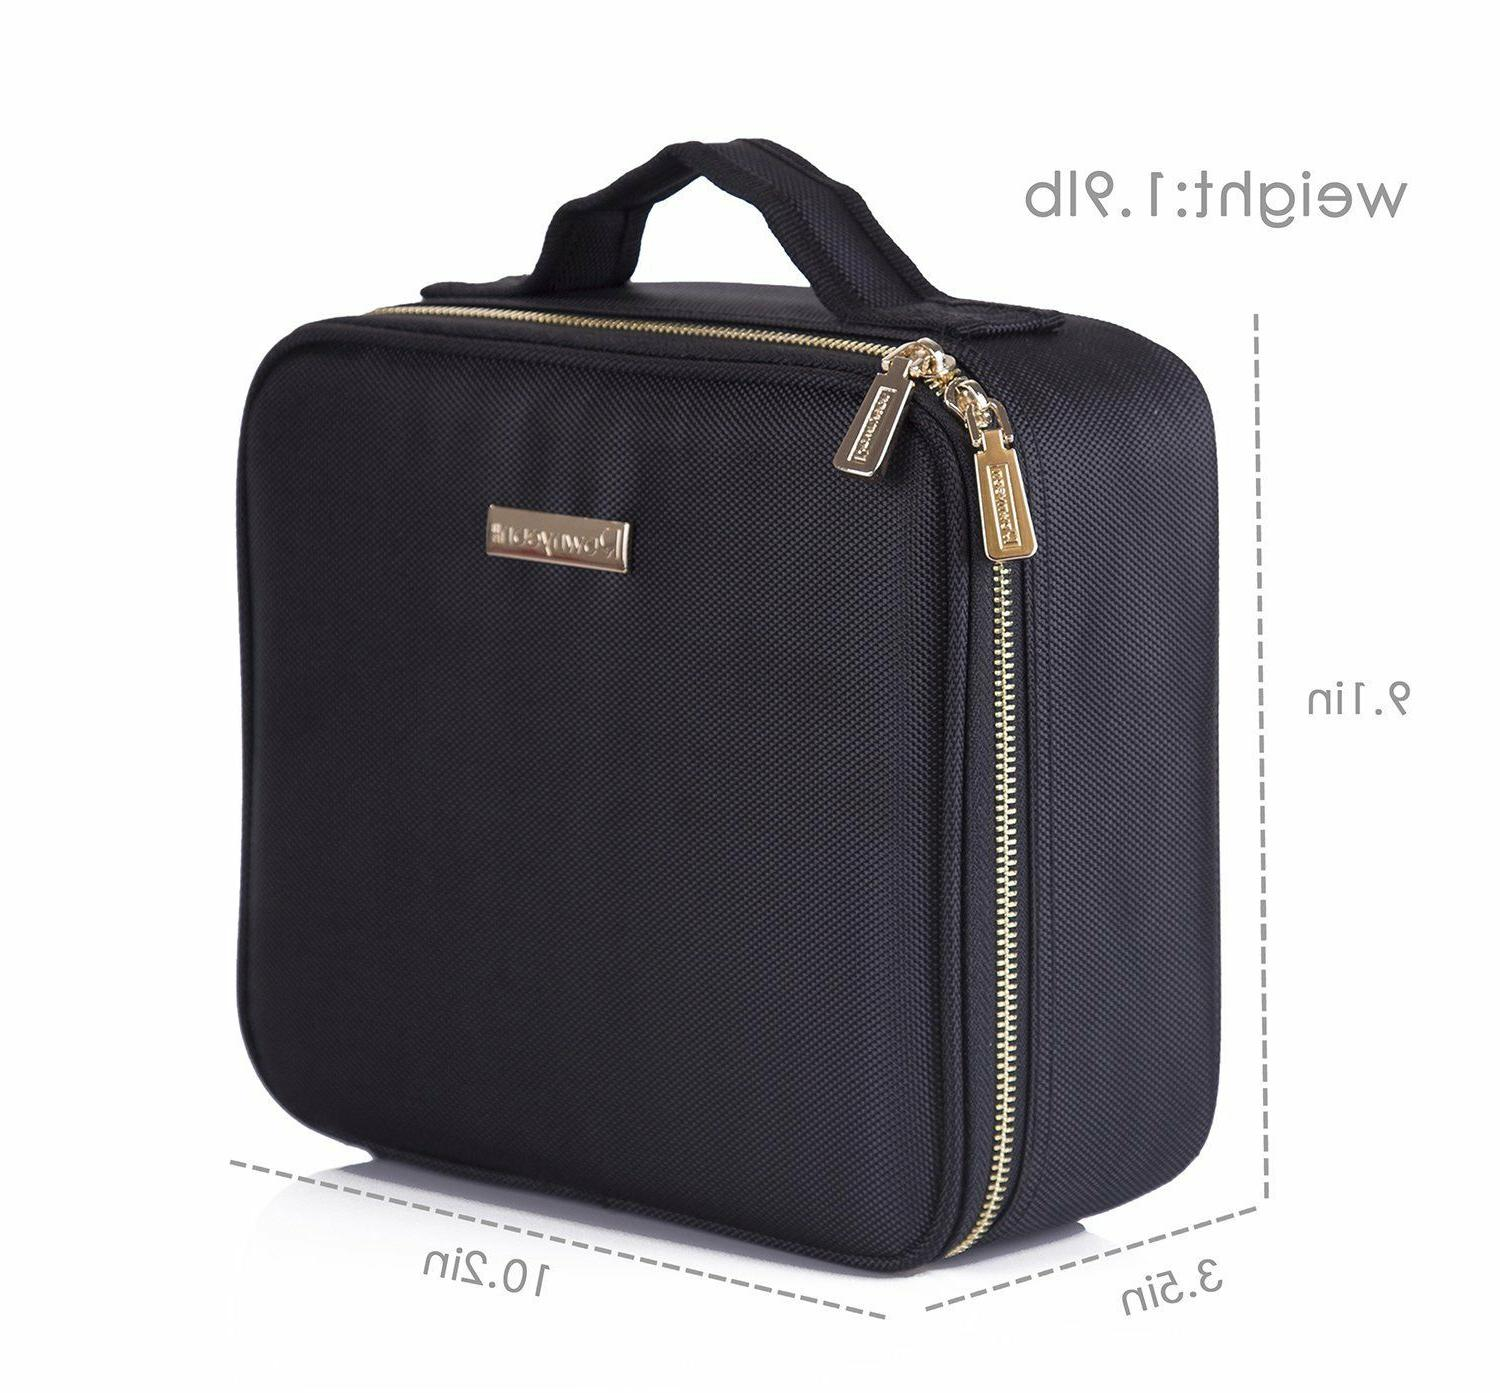 Rownyeon Travel Bag Organizer Make